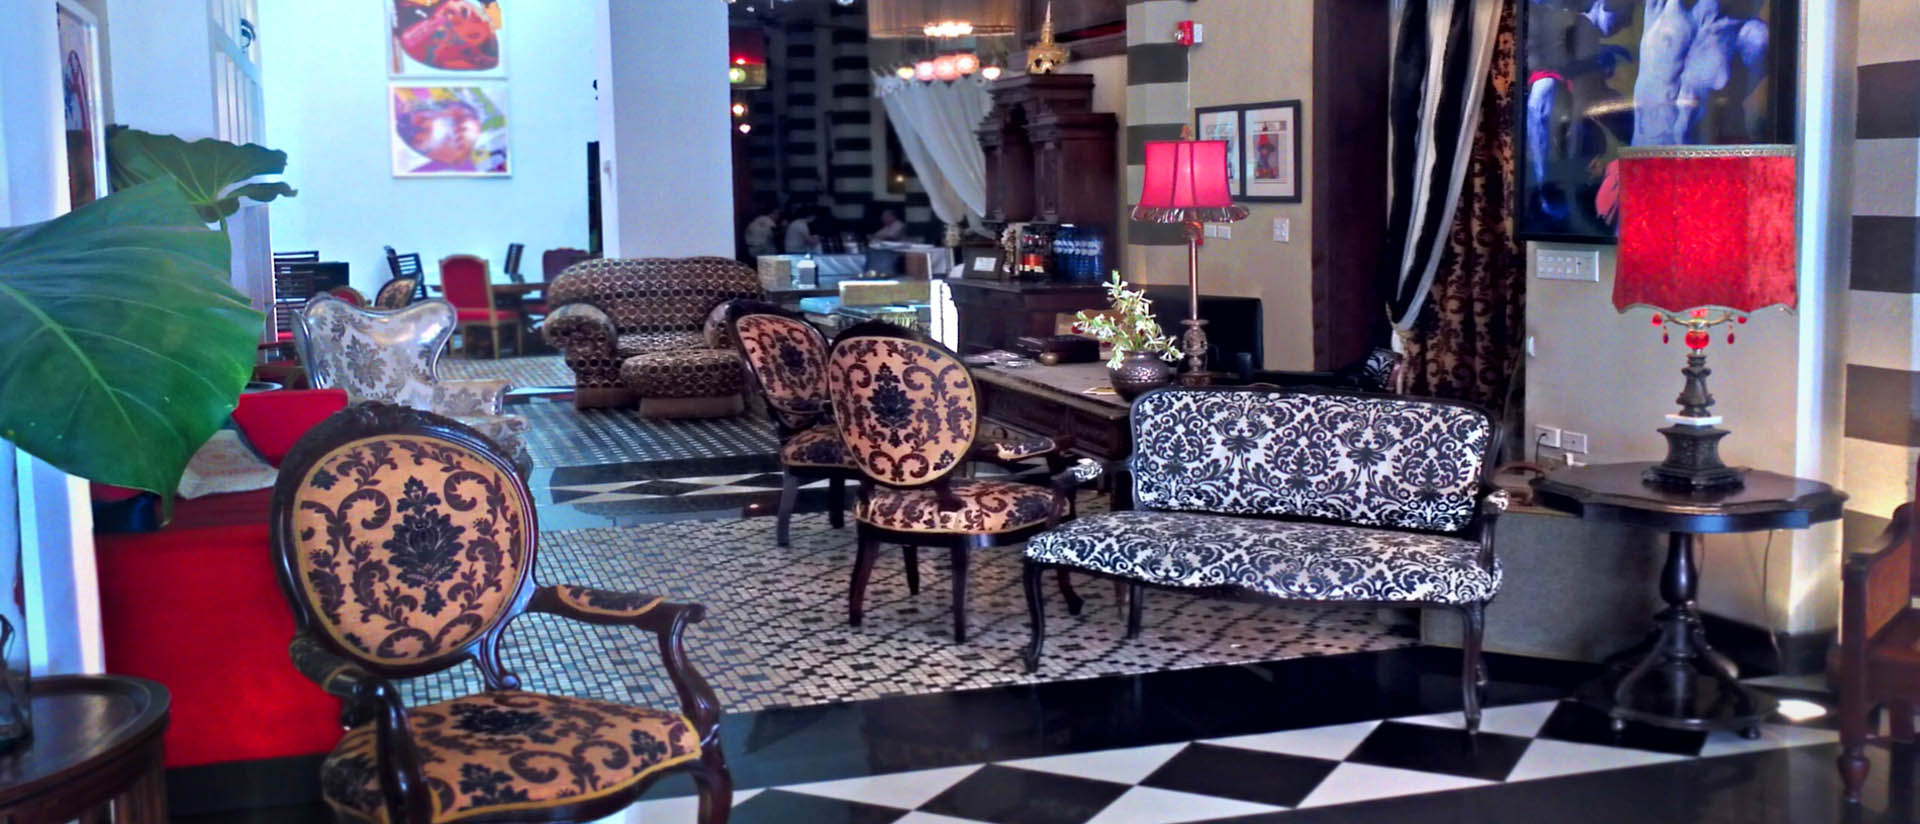 The best hotel room at the Casablanca Hotel